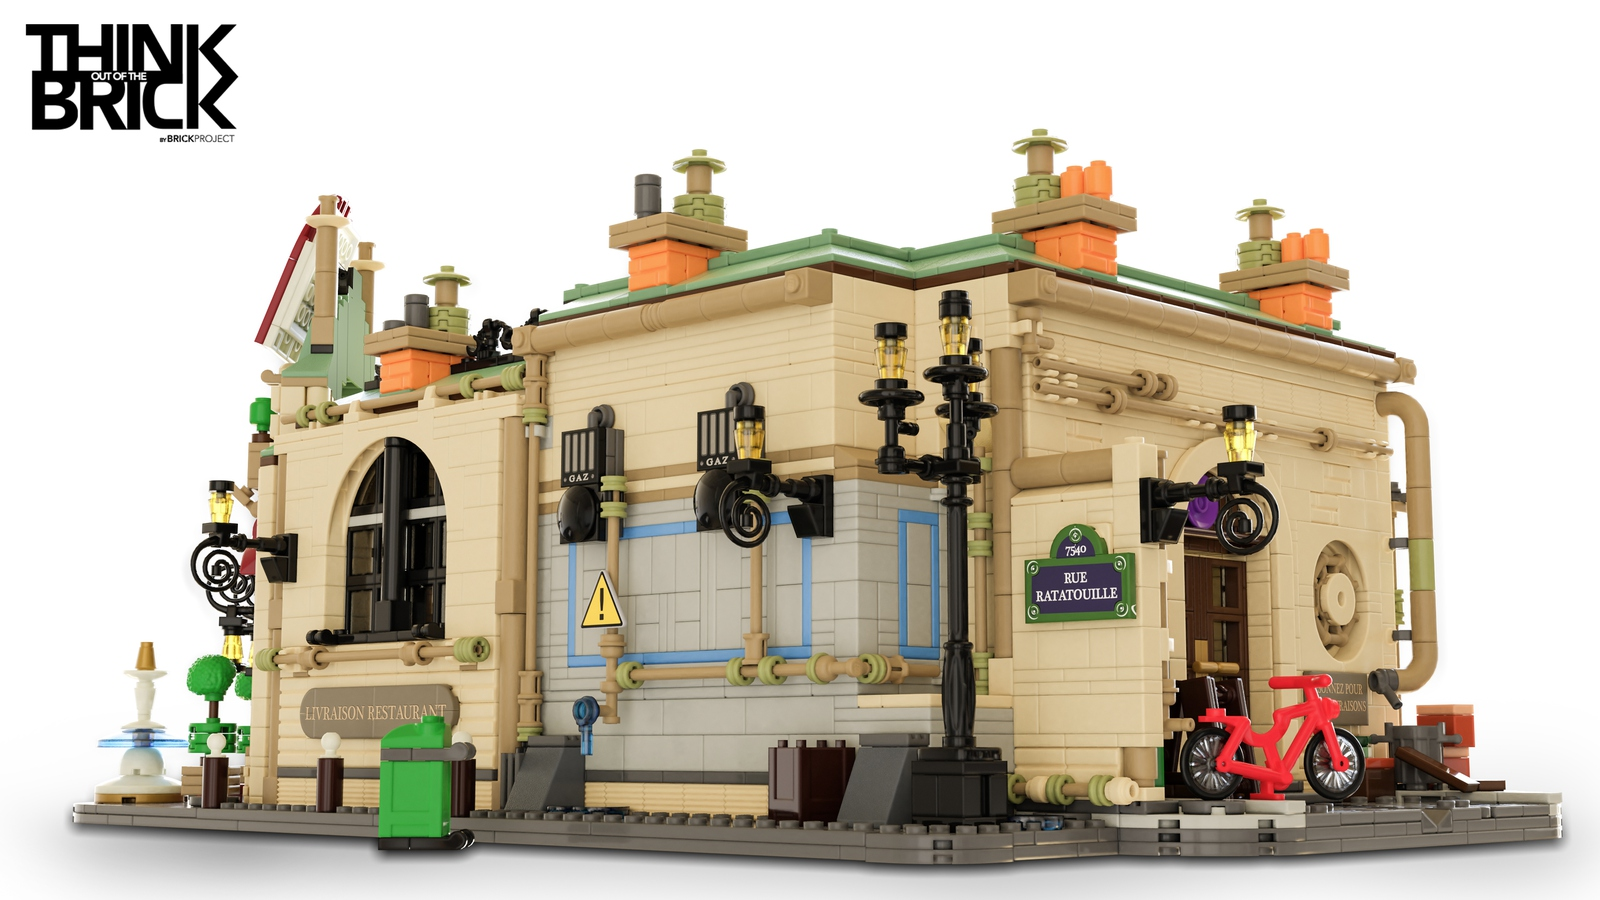 lego-ideas-ratatouille-open-the-doors-fassade-brick-project zusammengebaut.com